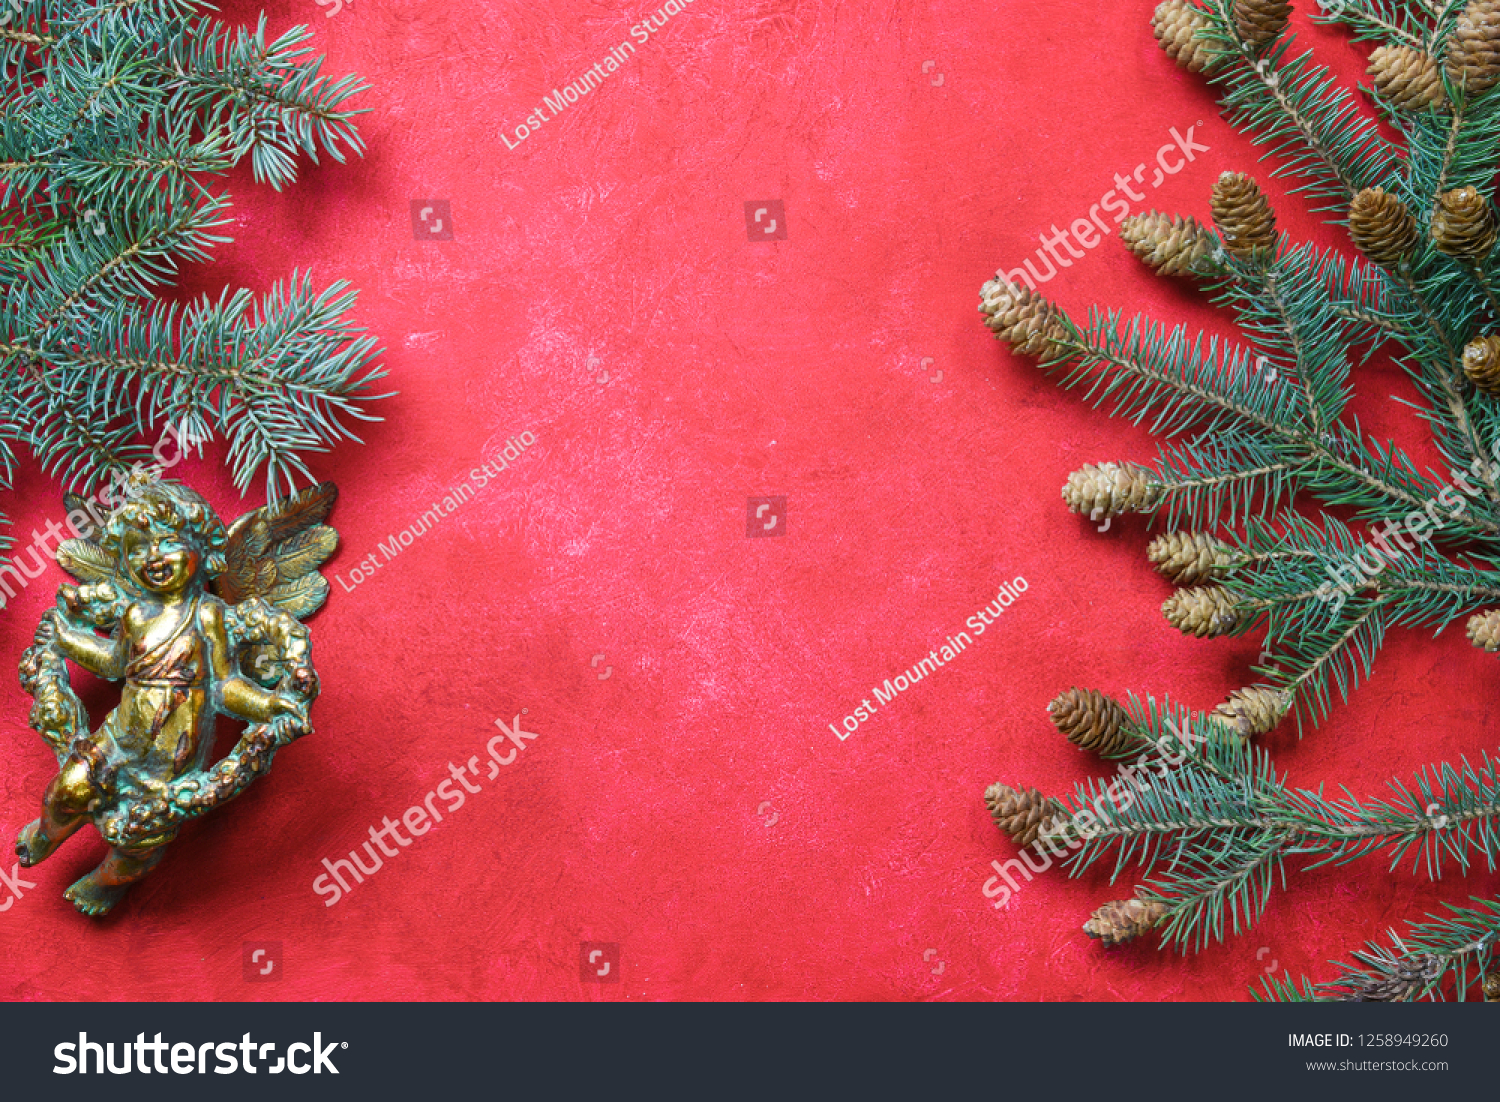 stock-photo-red-christmas-background-wit